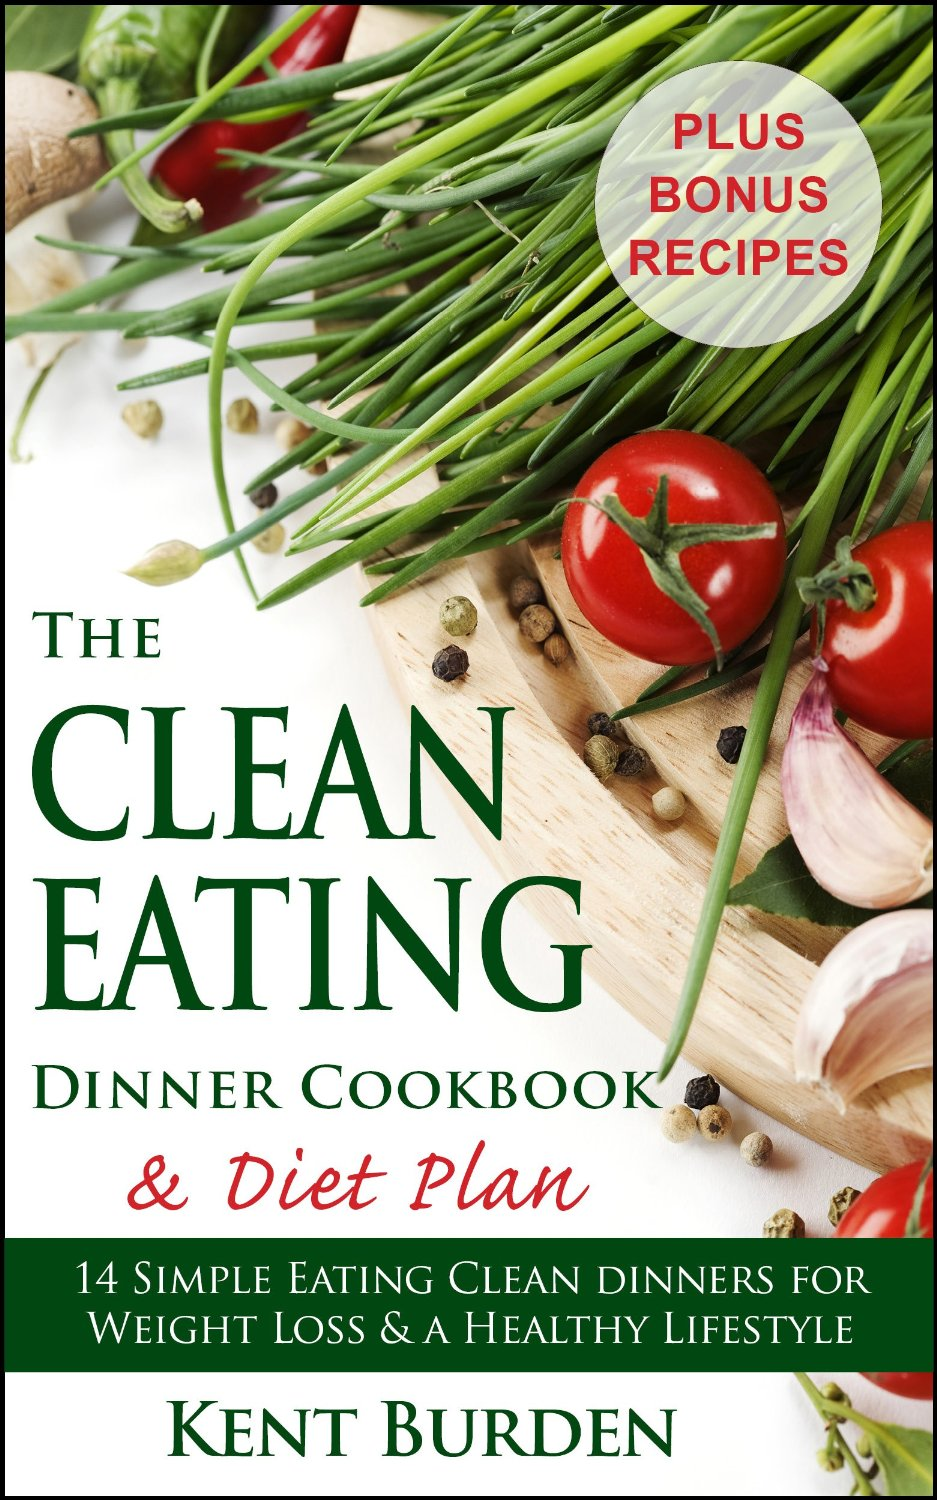 The Clean Eating